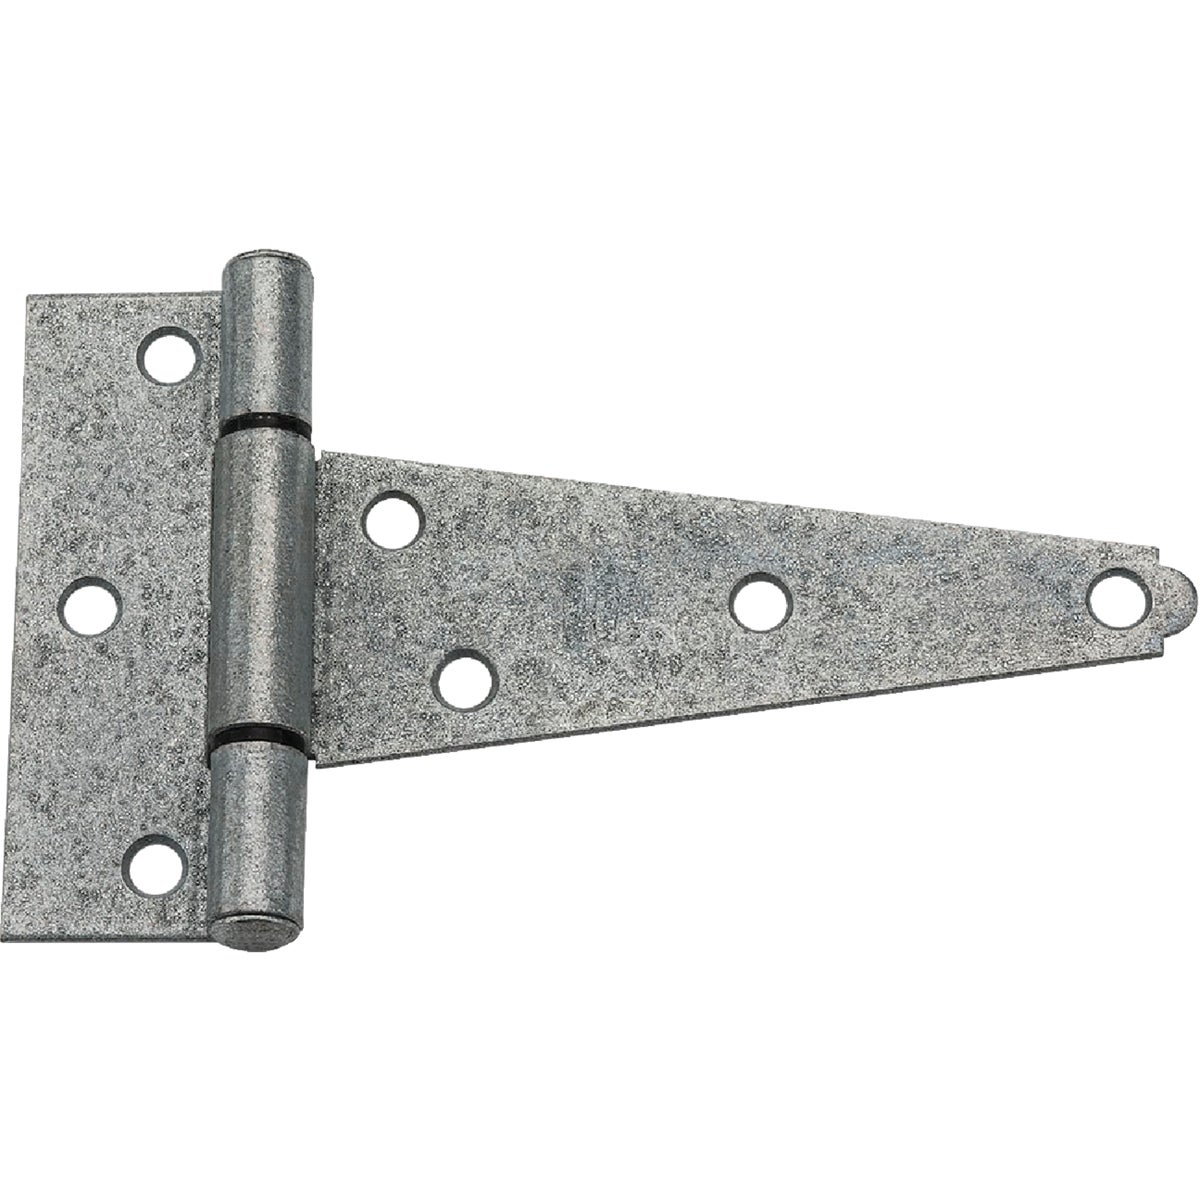 "5"" GALV EX HVY T HINGE - N129395 by National Mfg Co"